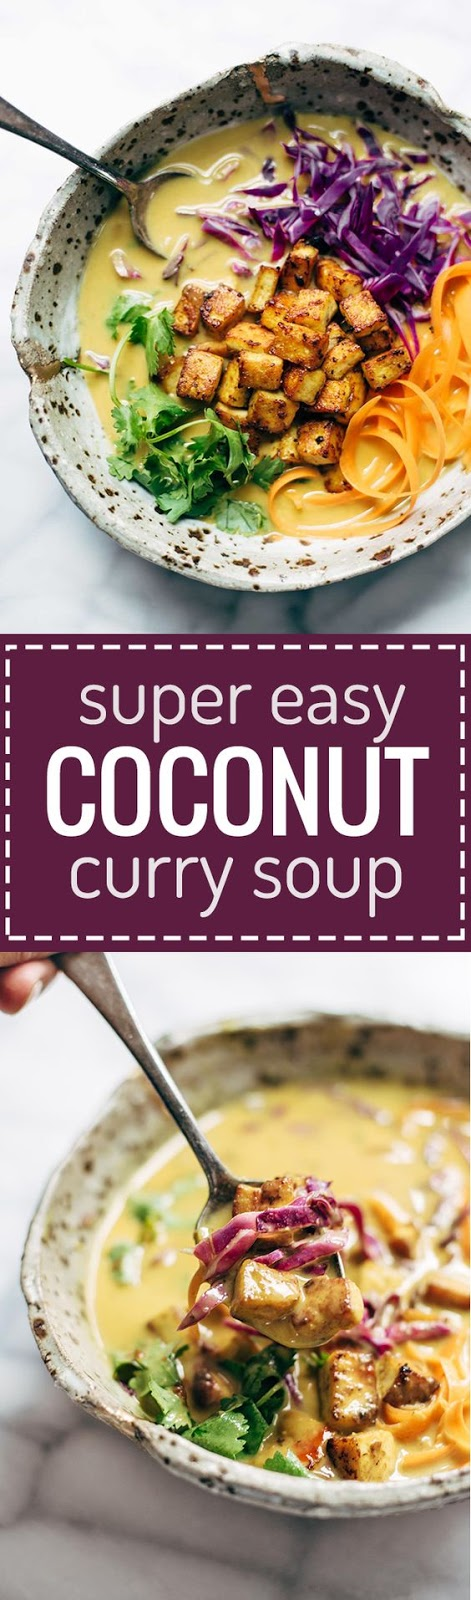 Coconut Curry Soup - this easy recipe can be made with almost ANY vegetables you have on hand! Silky-smooth and full of flavor. Vegetarian and vegan!